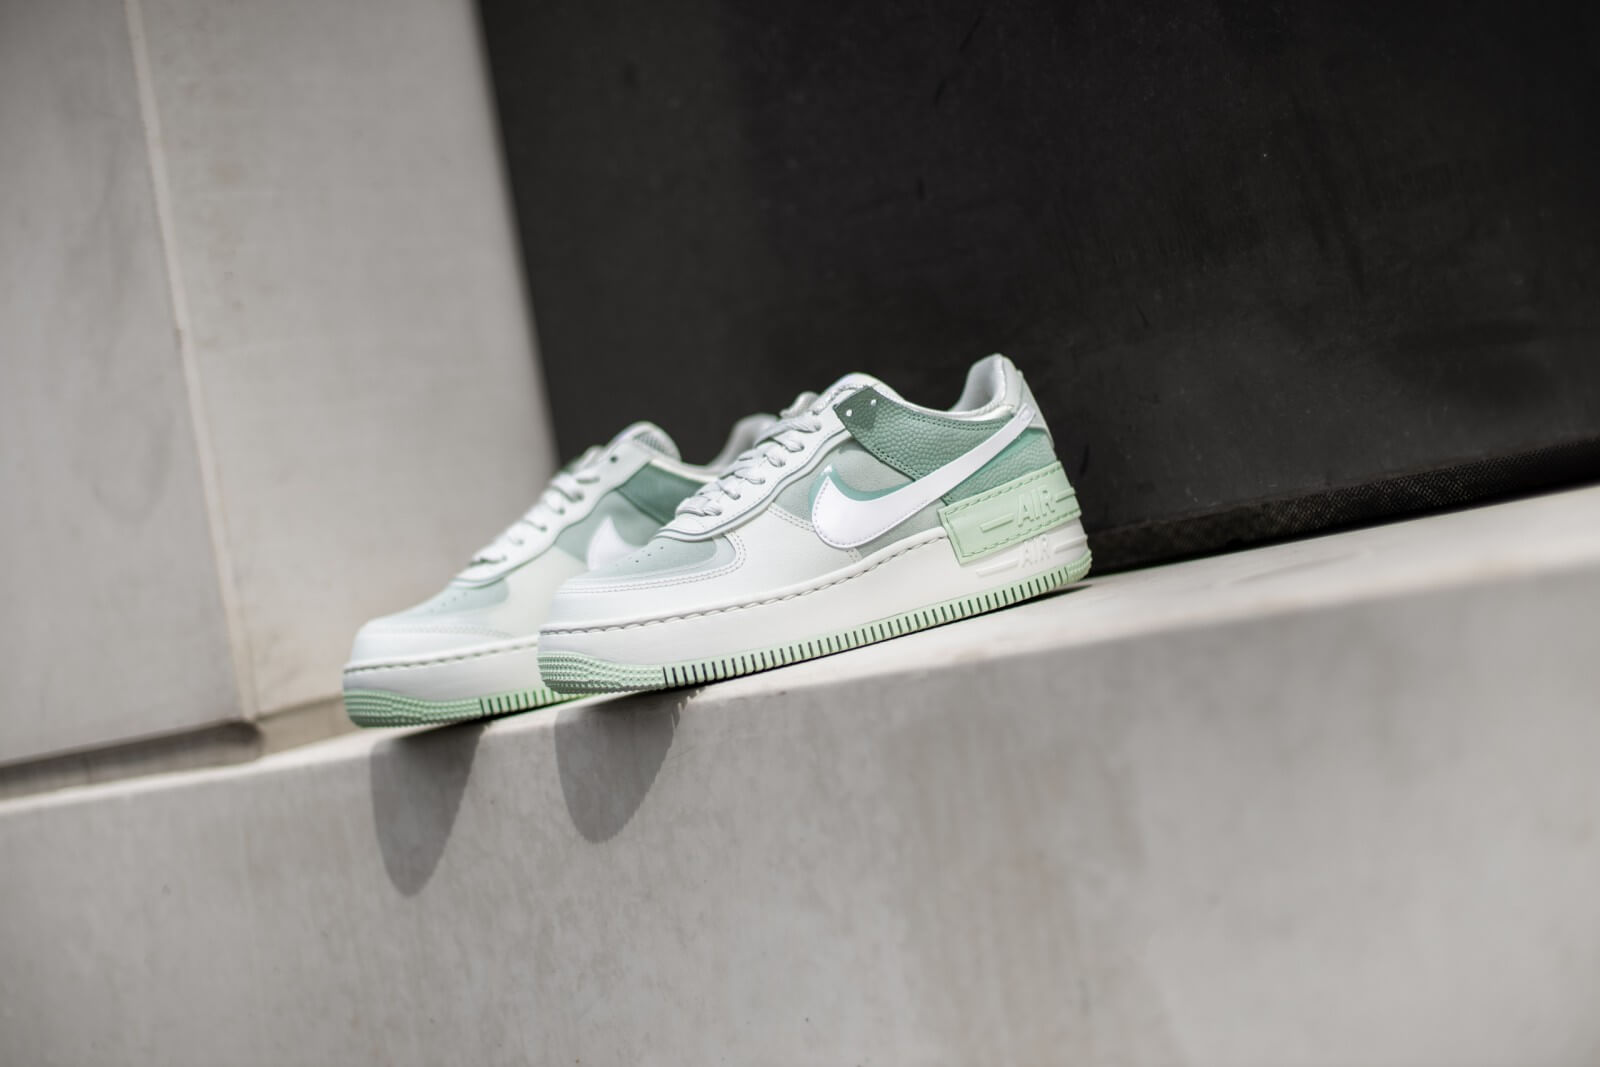 Nike Women S Air Force 1 Shadow Spruce Aura White Pistachio Frost Cw2655 001 Nike dunk high ac mint eu 38 uk 5 us 7 wmns air jordan force 1 max low sb sp. nike women s air force 1 shadow spruce aura white pistachio frost